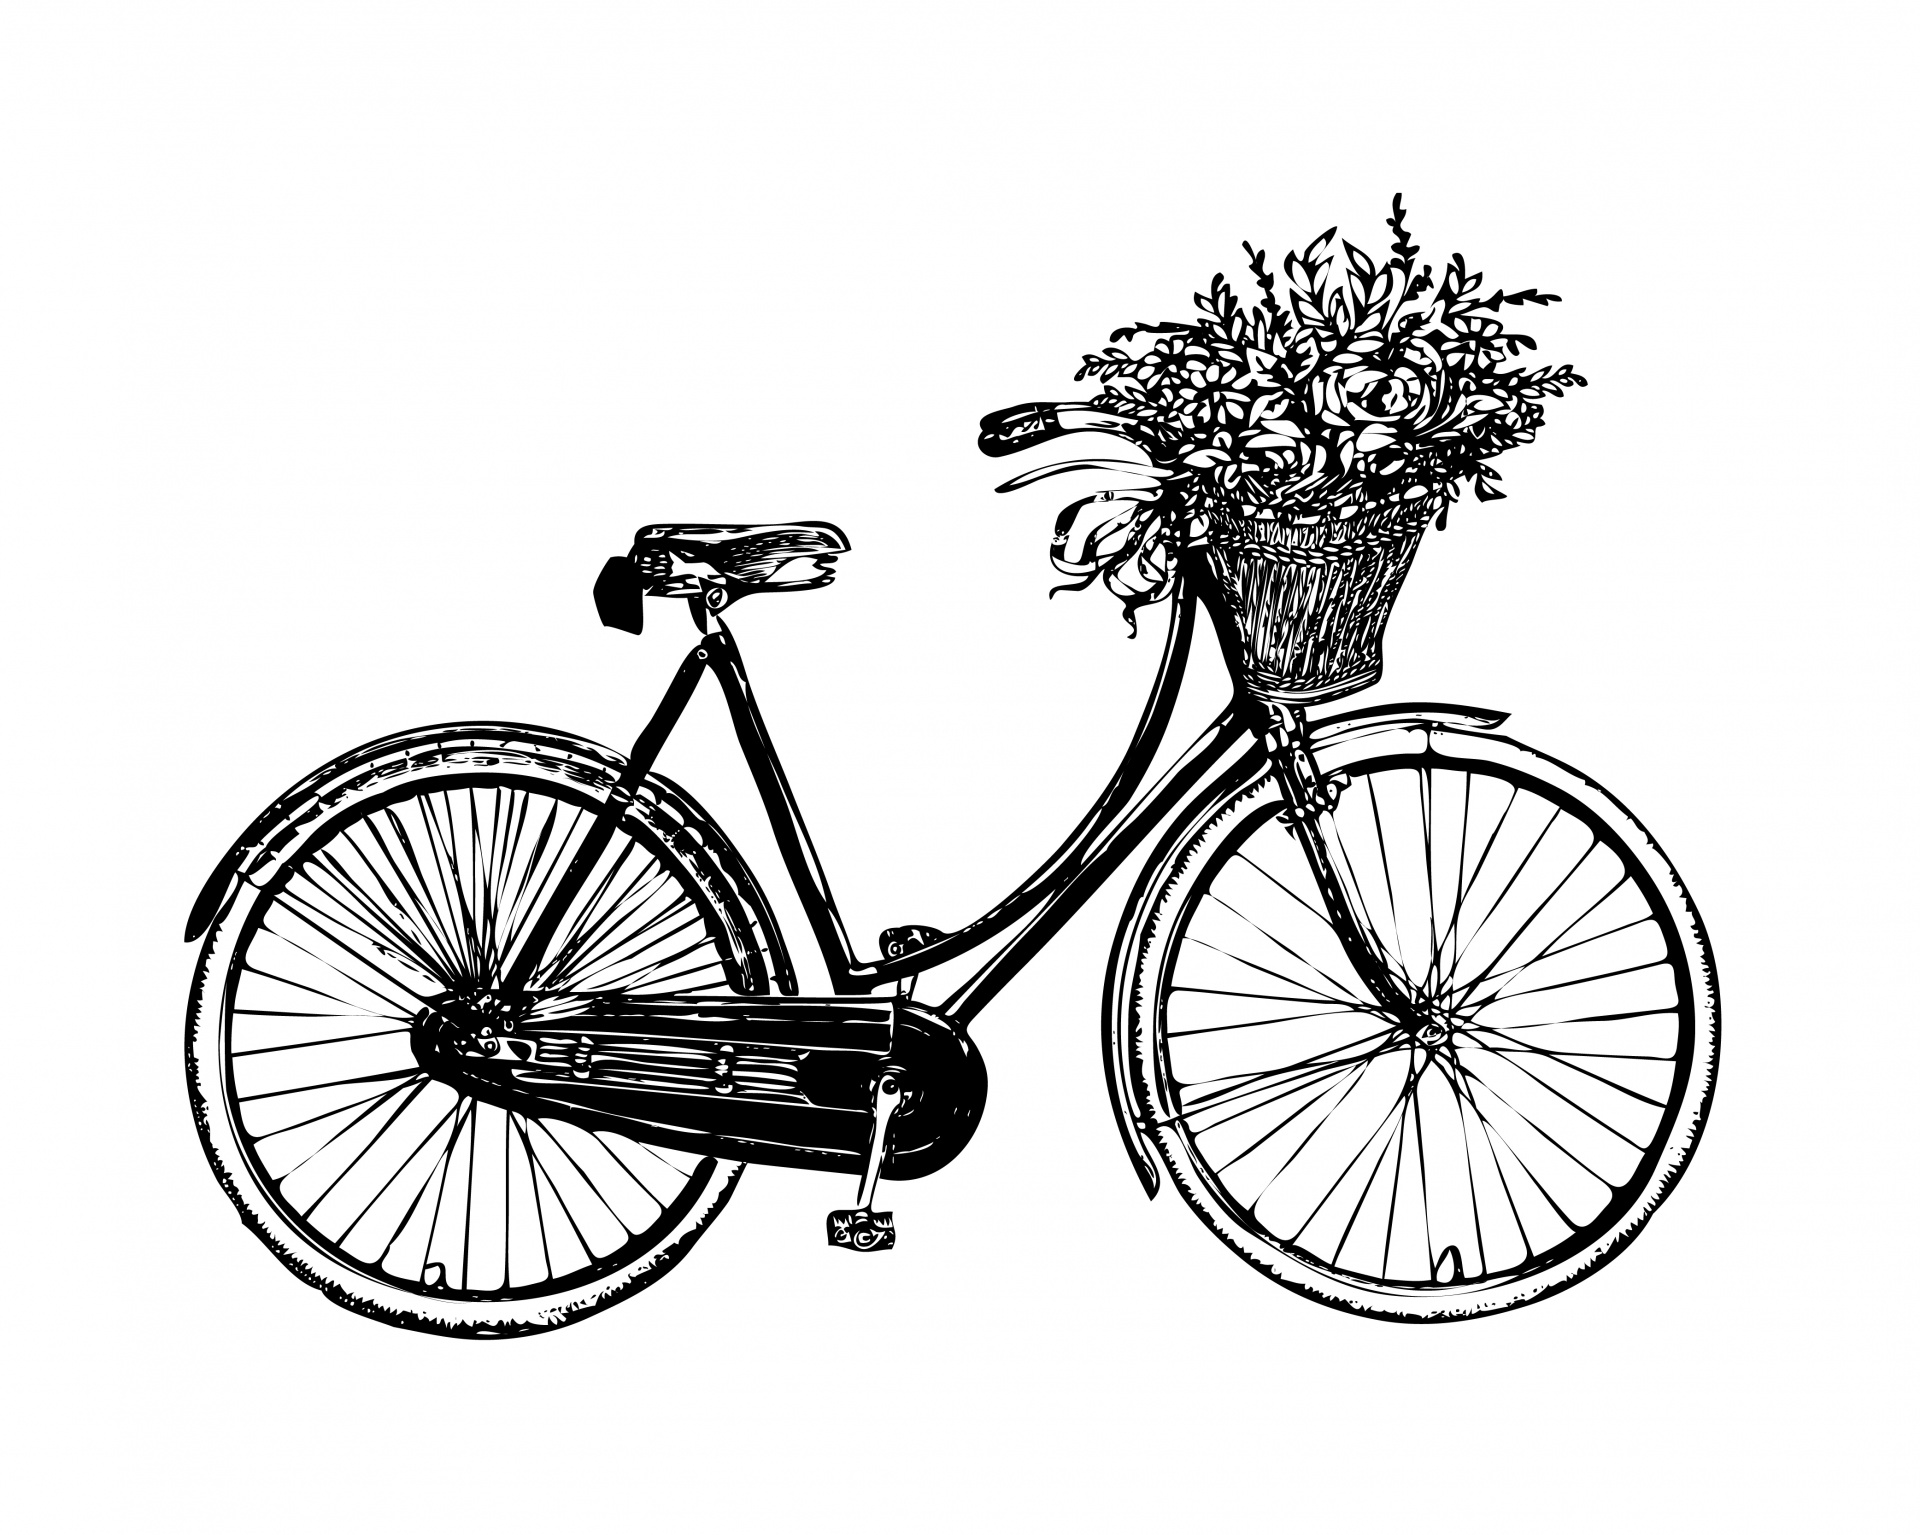 Biking clipart public domain. Bicycle flowers vintage free